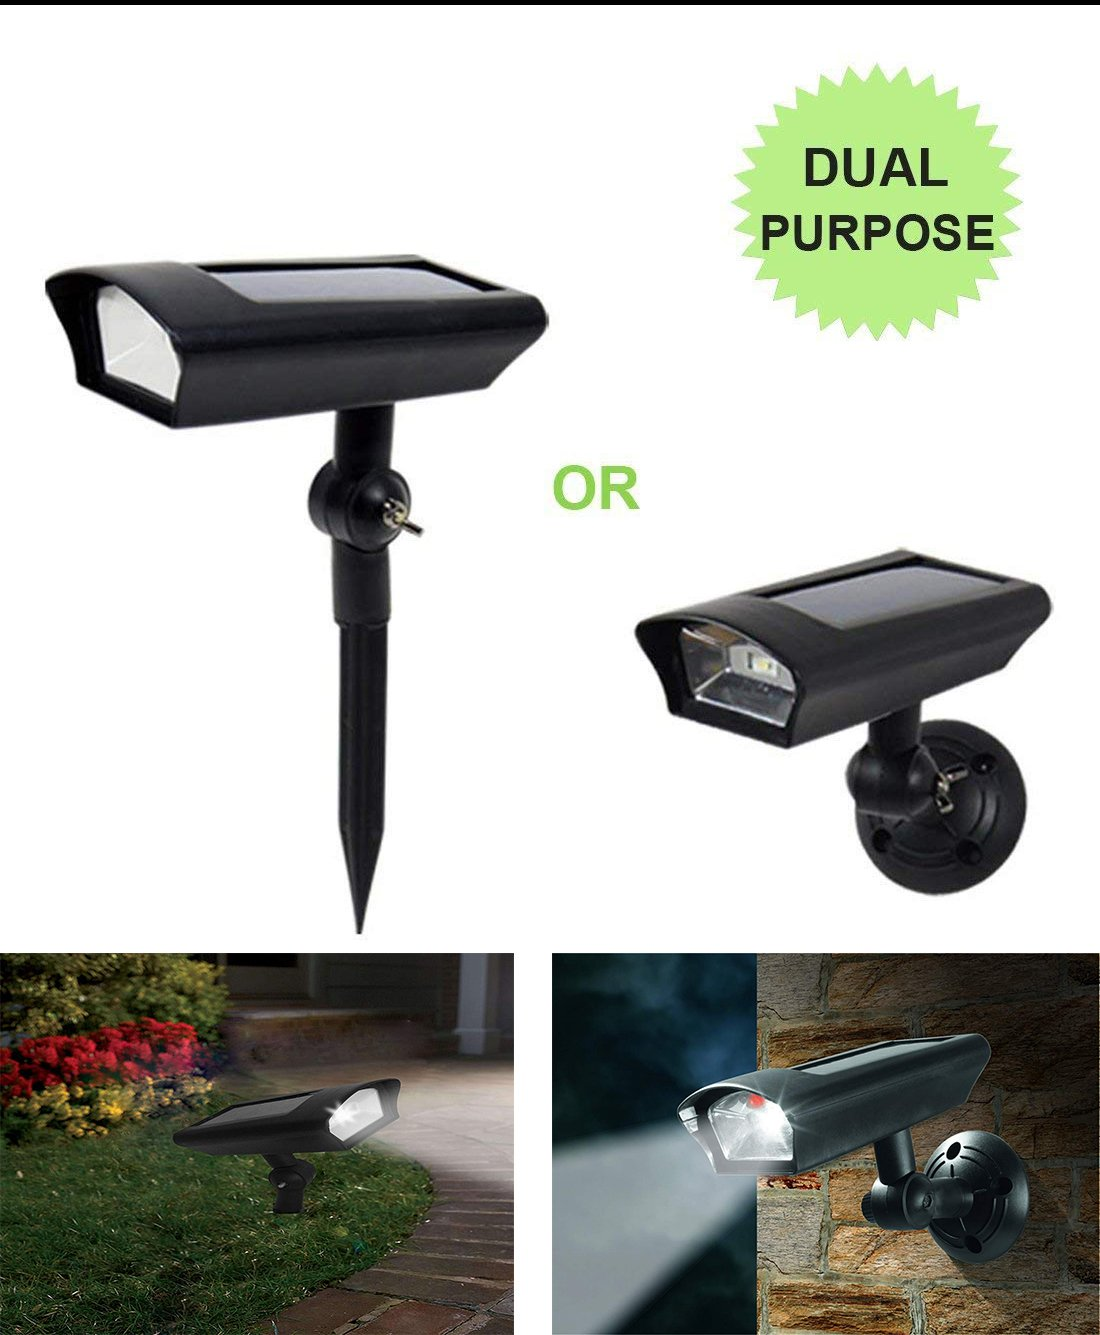 Solar LED Lawn Light Outdoor Motion Sensor Dusk to Dawn Fake Dummy Camera for Garden Ground Path Porch Wall Security Dual Use Wireless Waterproof Pack of 1